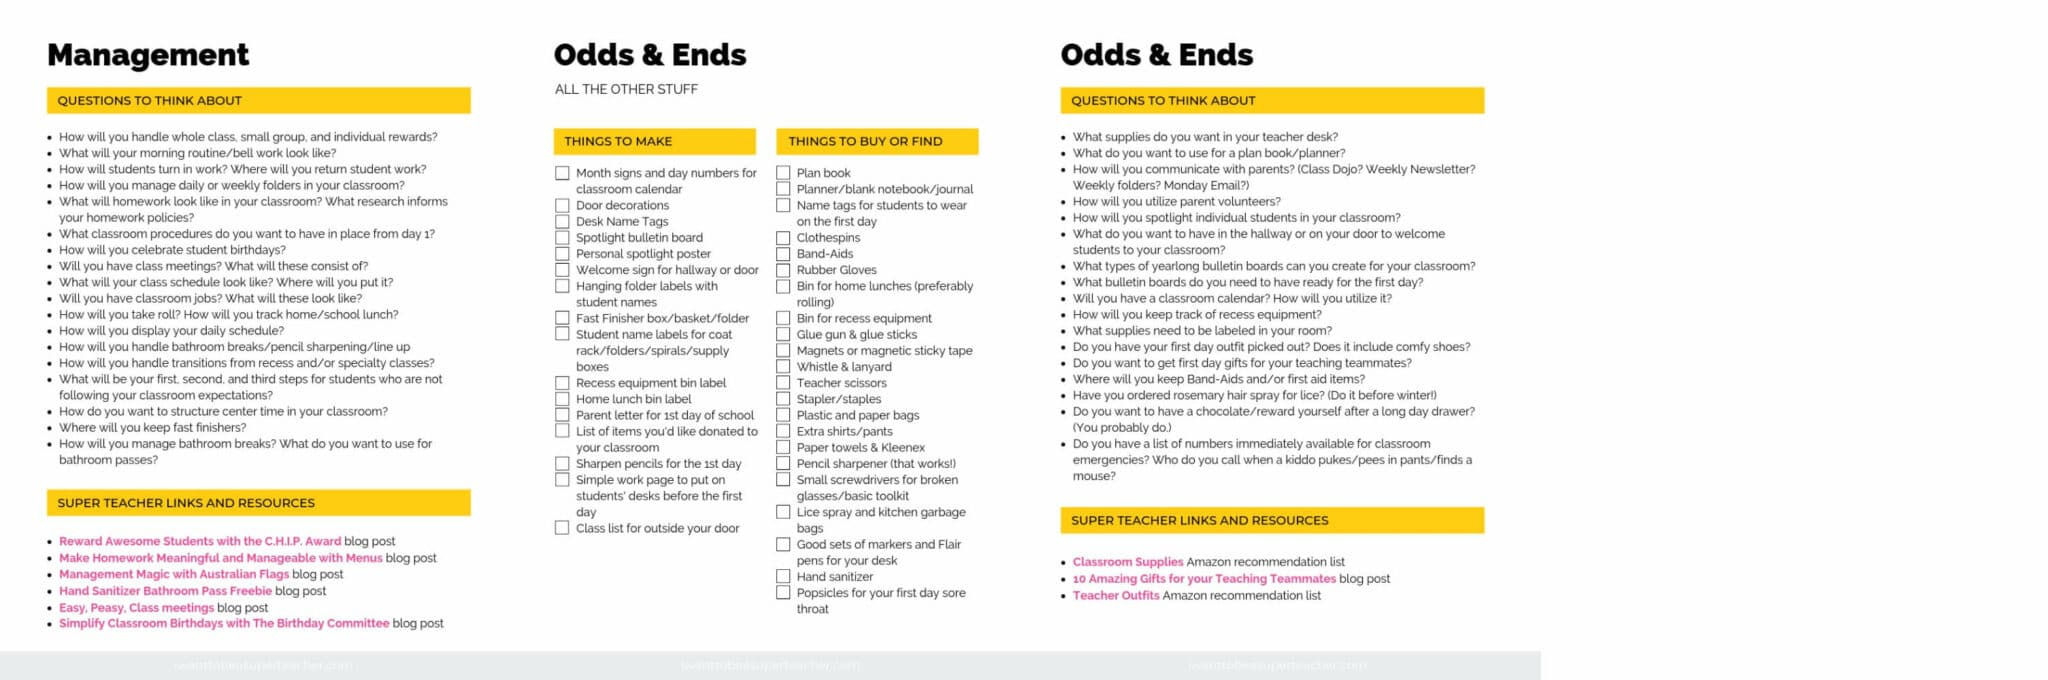 Classroom setup pages for management and odds and ends